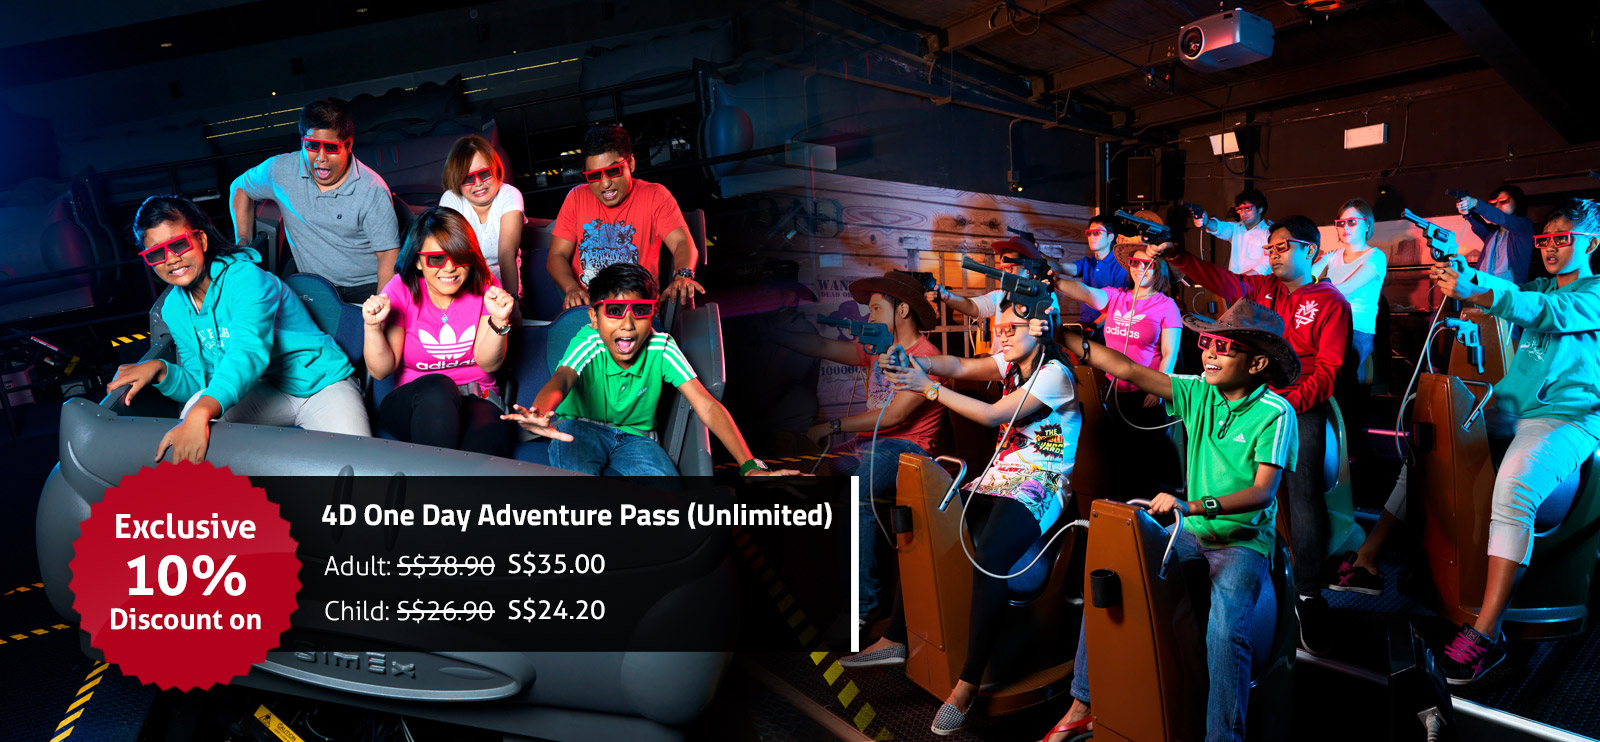 10 % discount on unlimited adventure pass only ad sentosa 4d adventure park